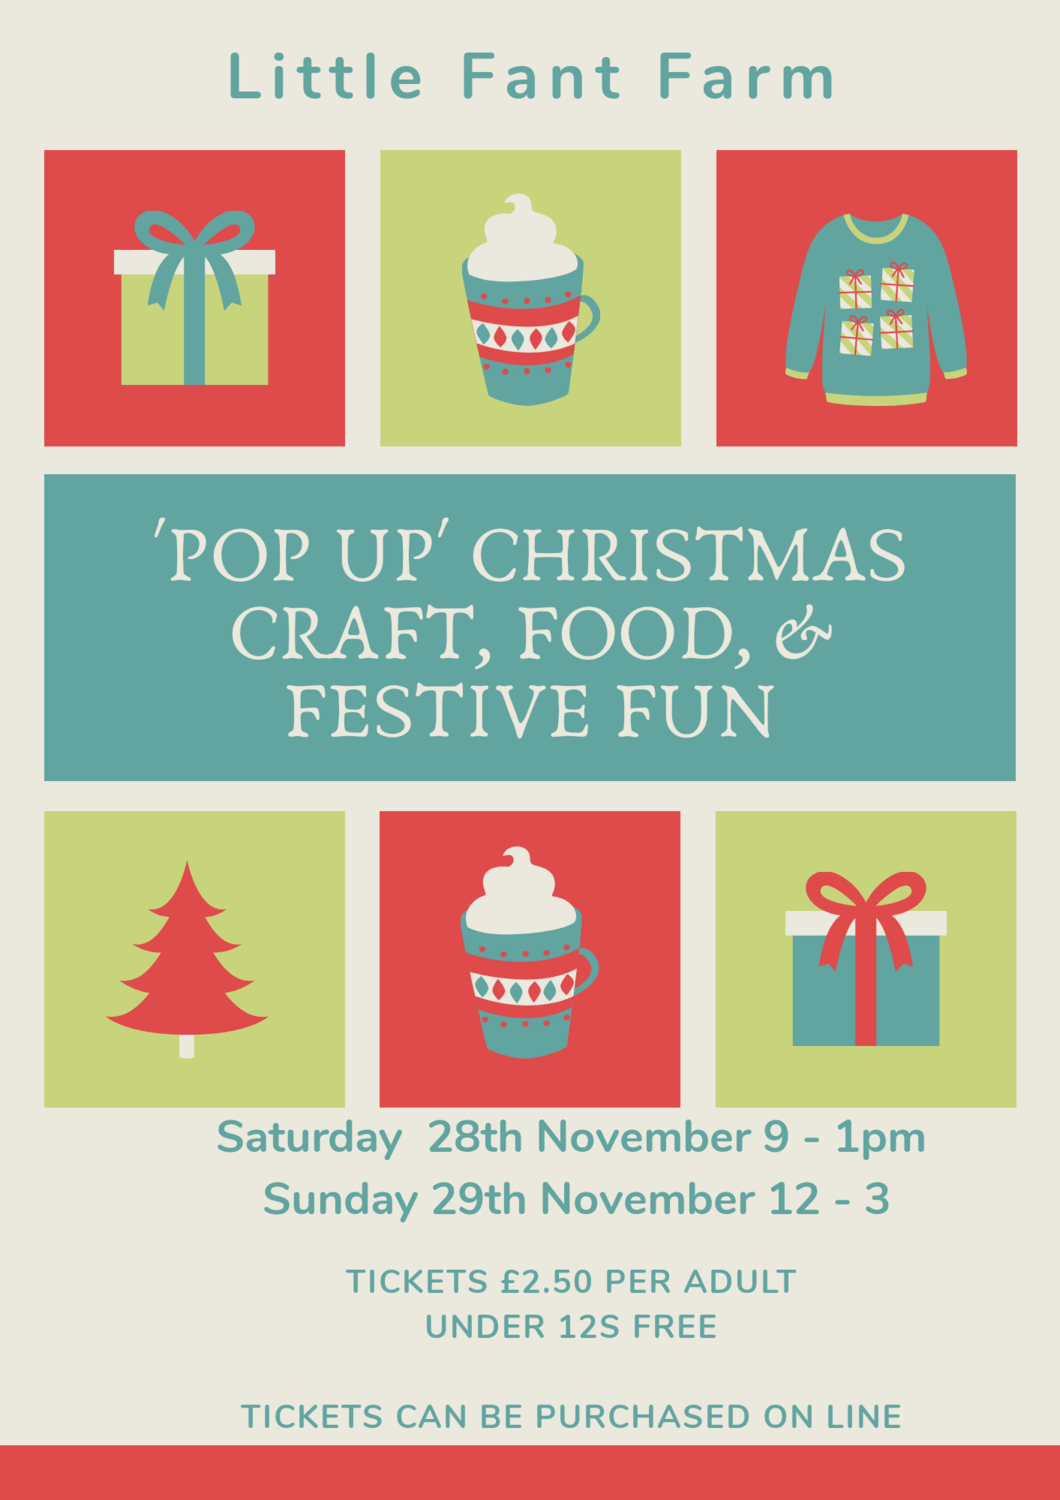 Pop Up Christmas Food & Craft Festival -  Family Entry Ticket SATURDAY 28th NOVEMBER